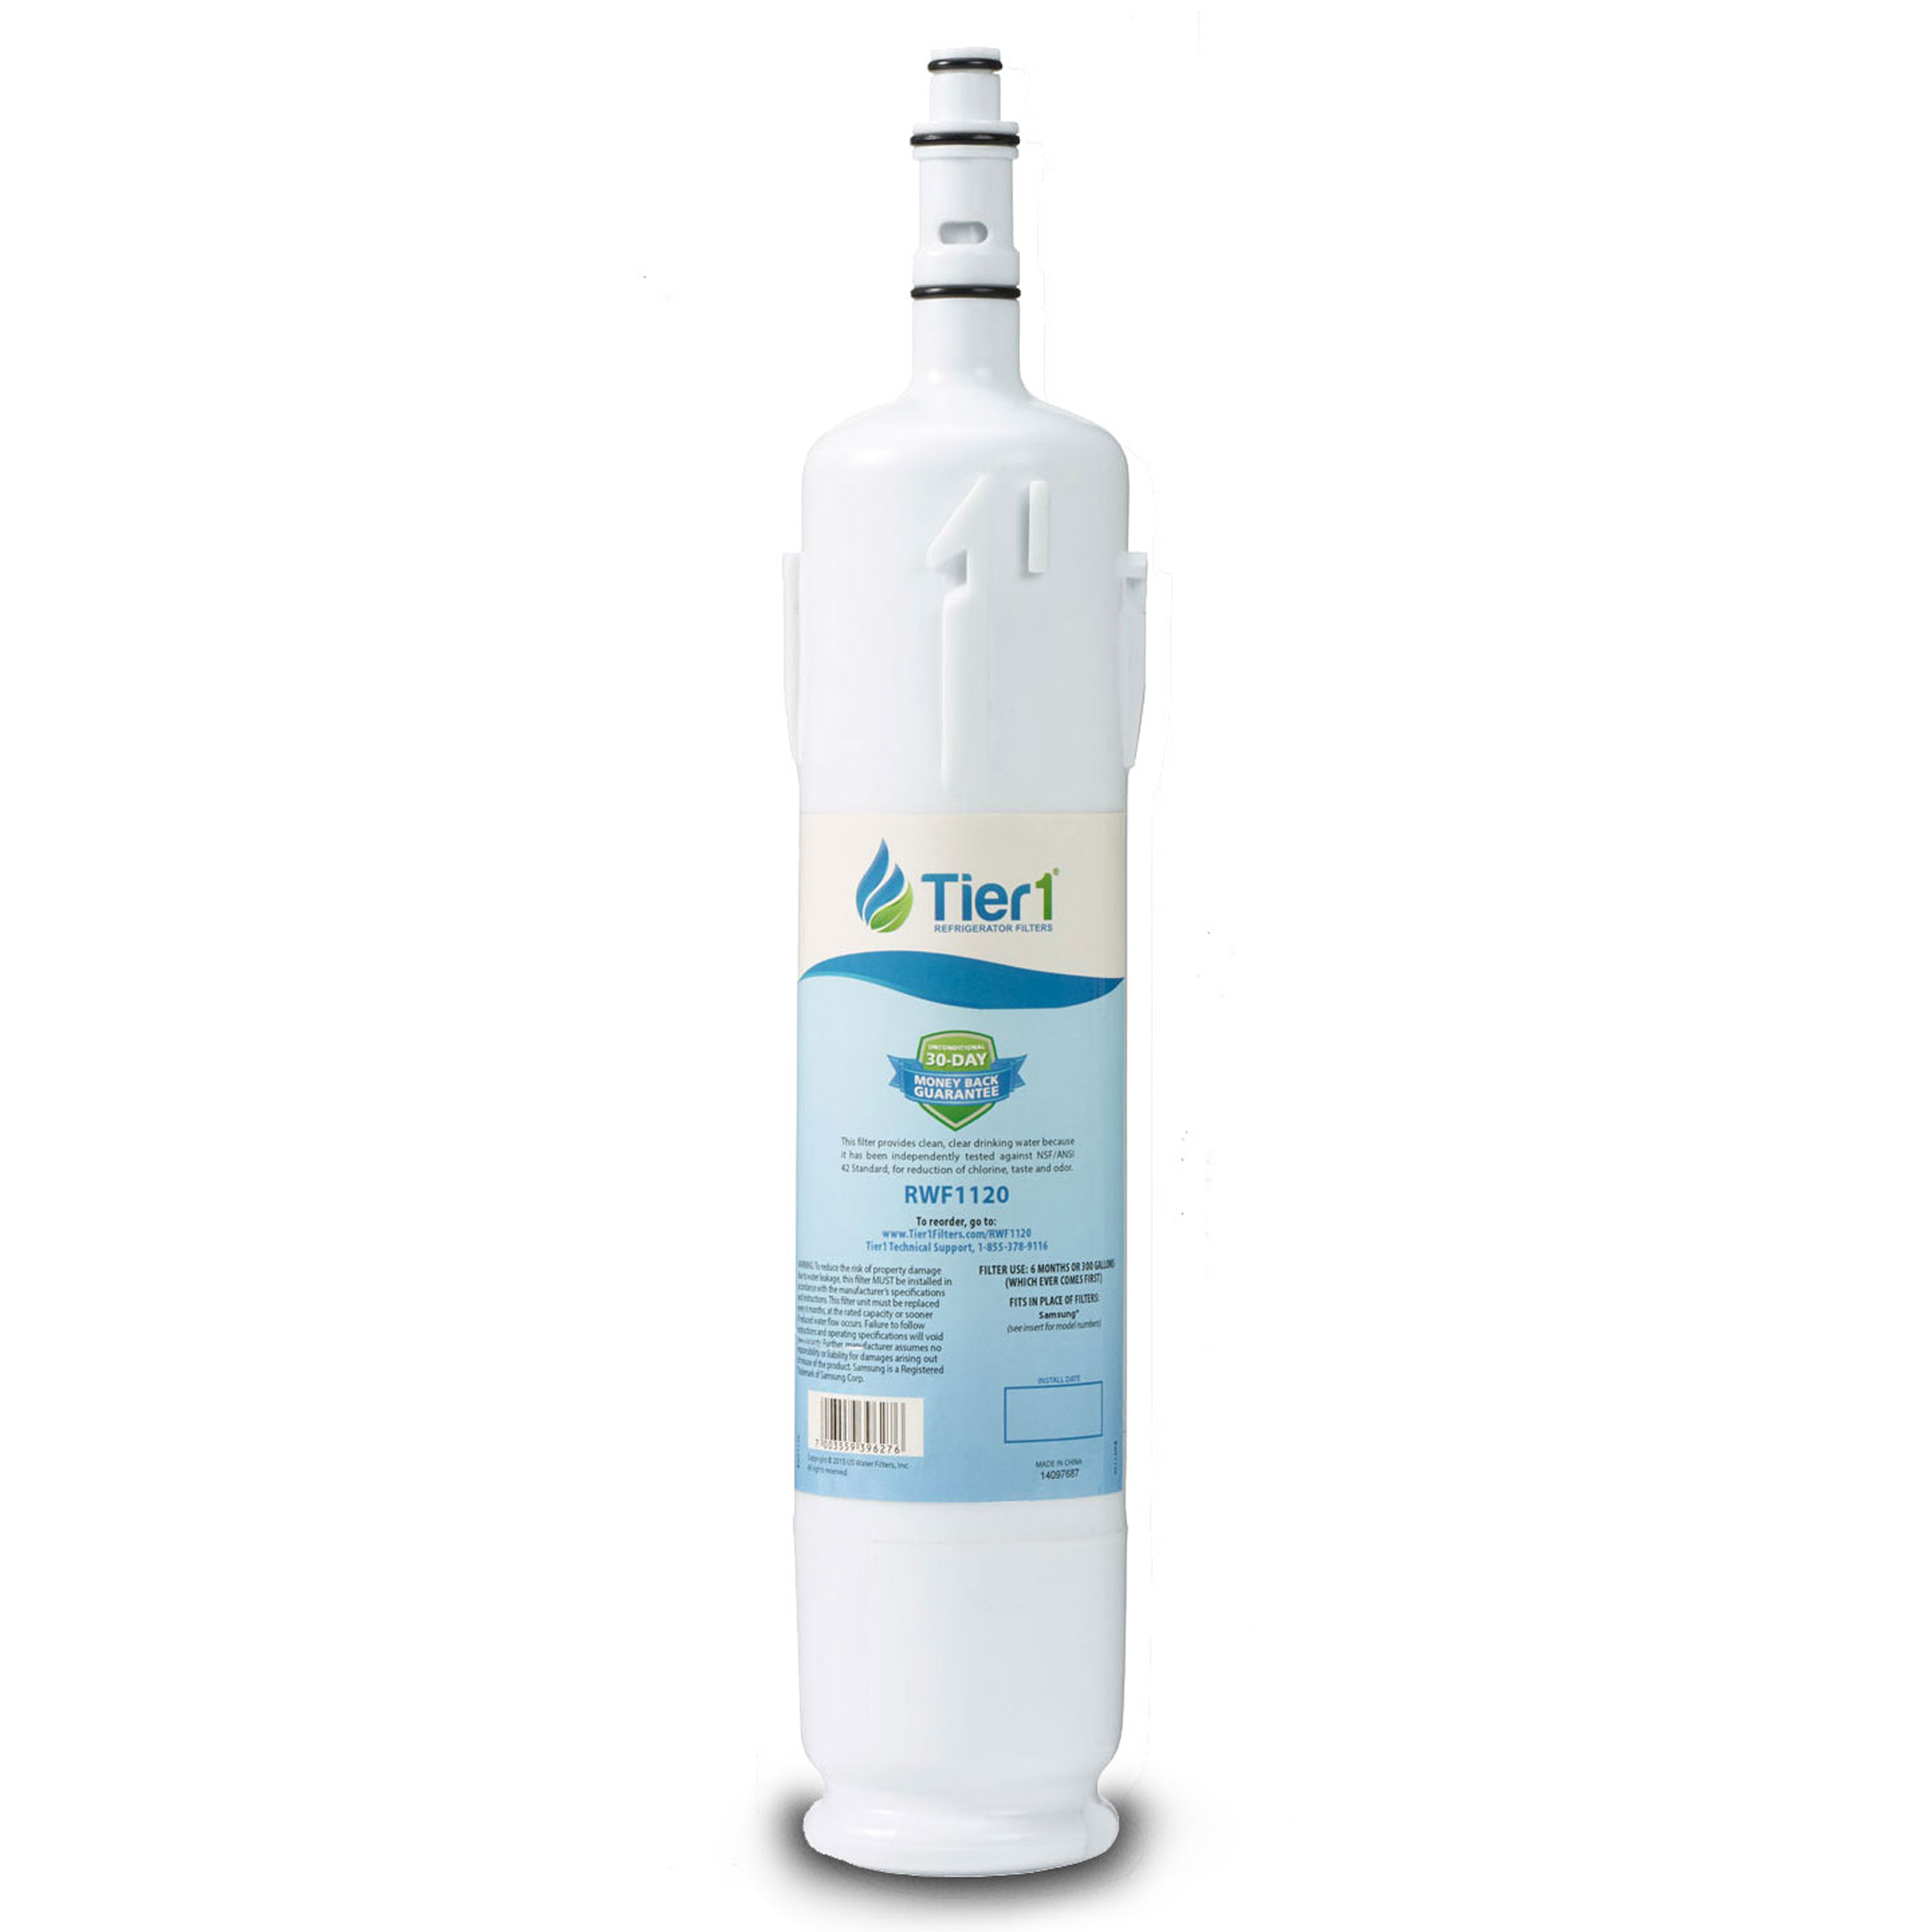 Samsung DA29-00012B Comparable Refrigerator Water Filter Replacement by Tier1 TIER1-RWF1120